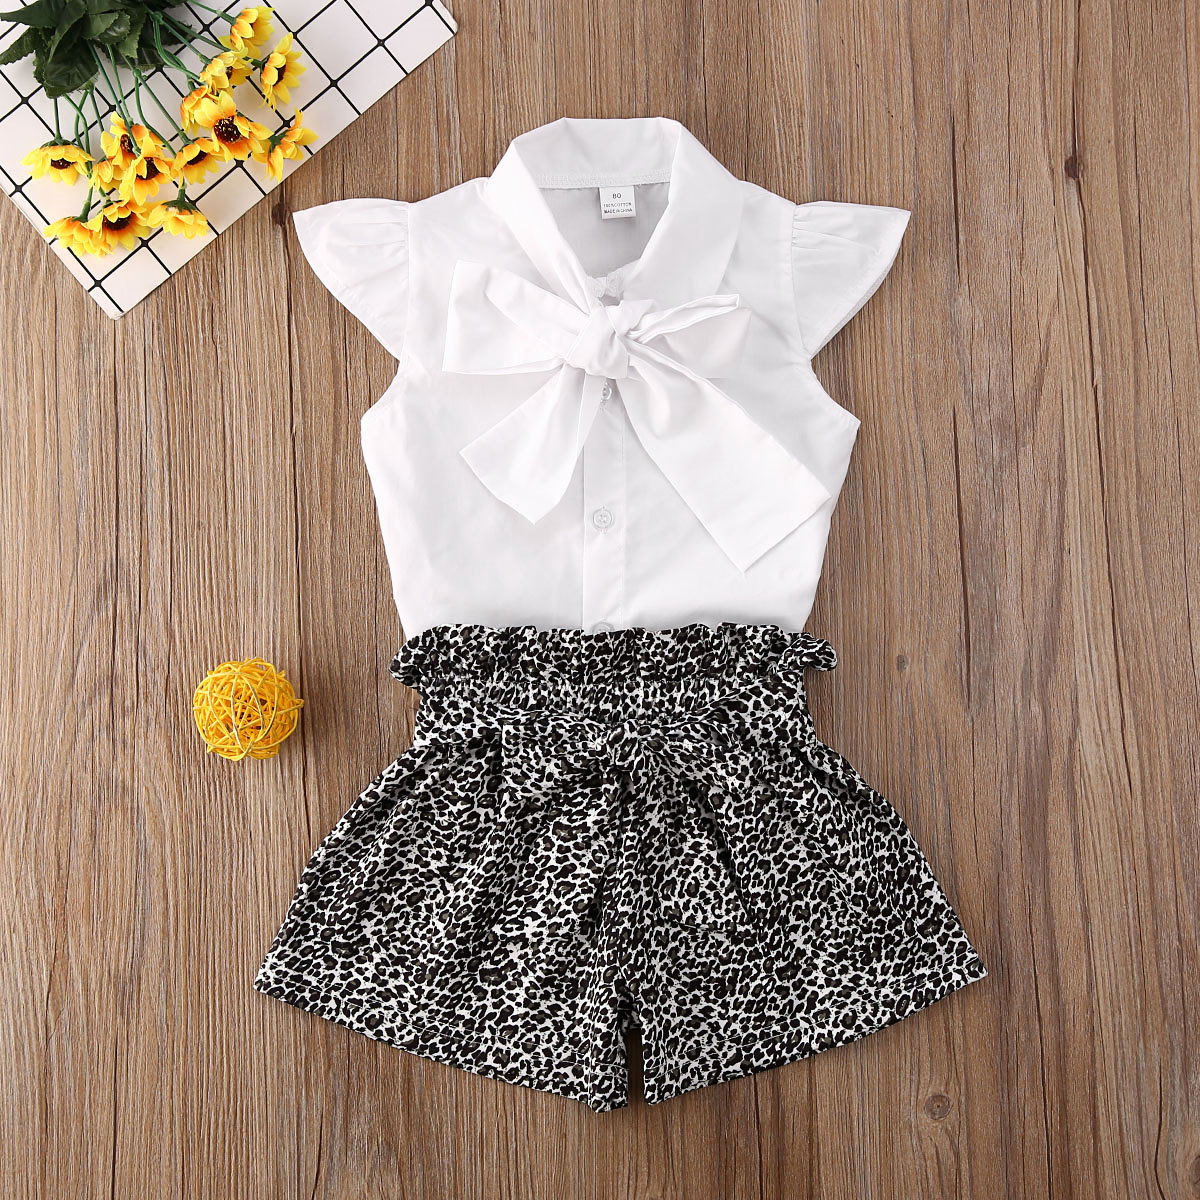 Pudcoco Toddler Baby Girl Clothes Solid Color Sleeveless Vest Shirt Tops Leopard Print Short Pants 2Pcs Outfits Clothes